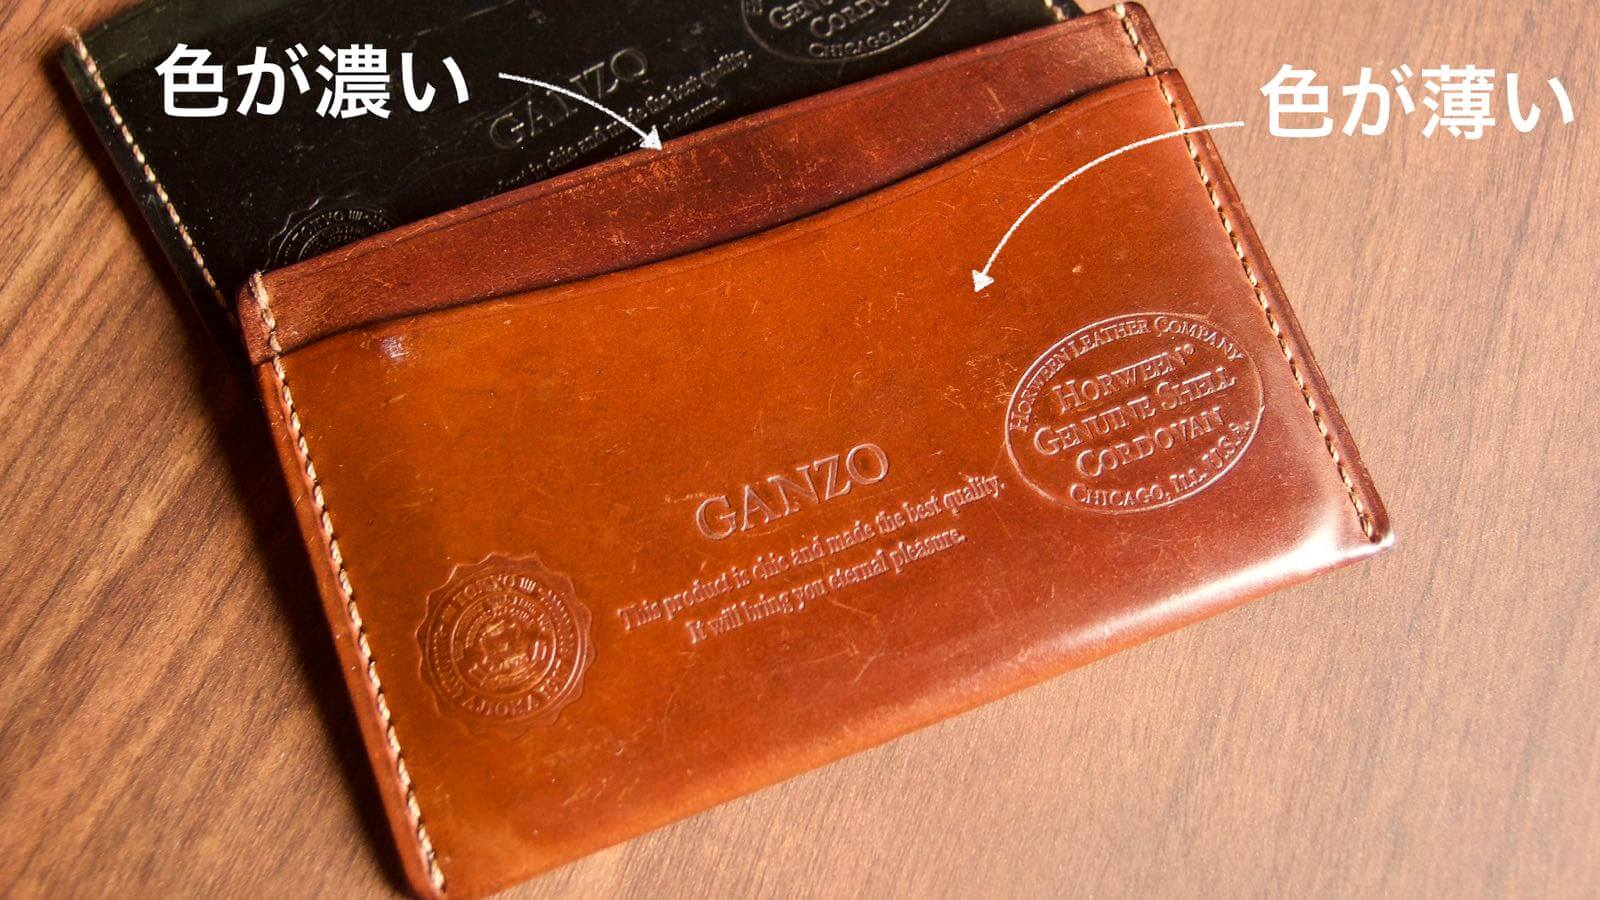 0037 Ganzo Shell Code Bank Business Card Holder 5 Years Aging 09